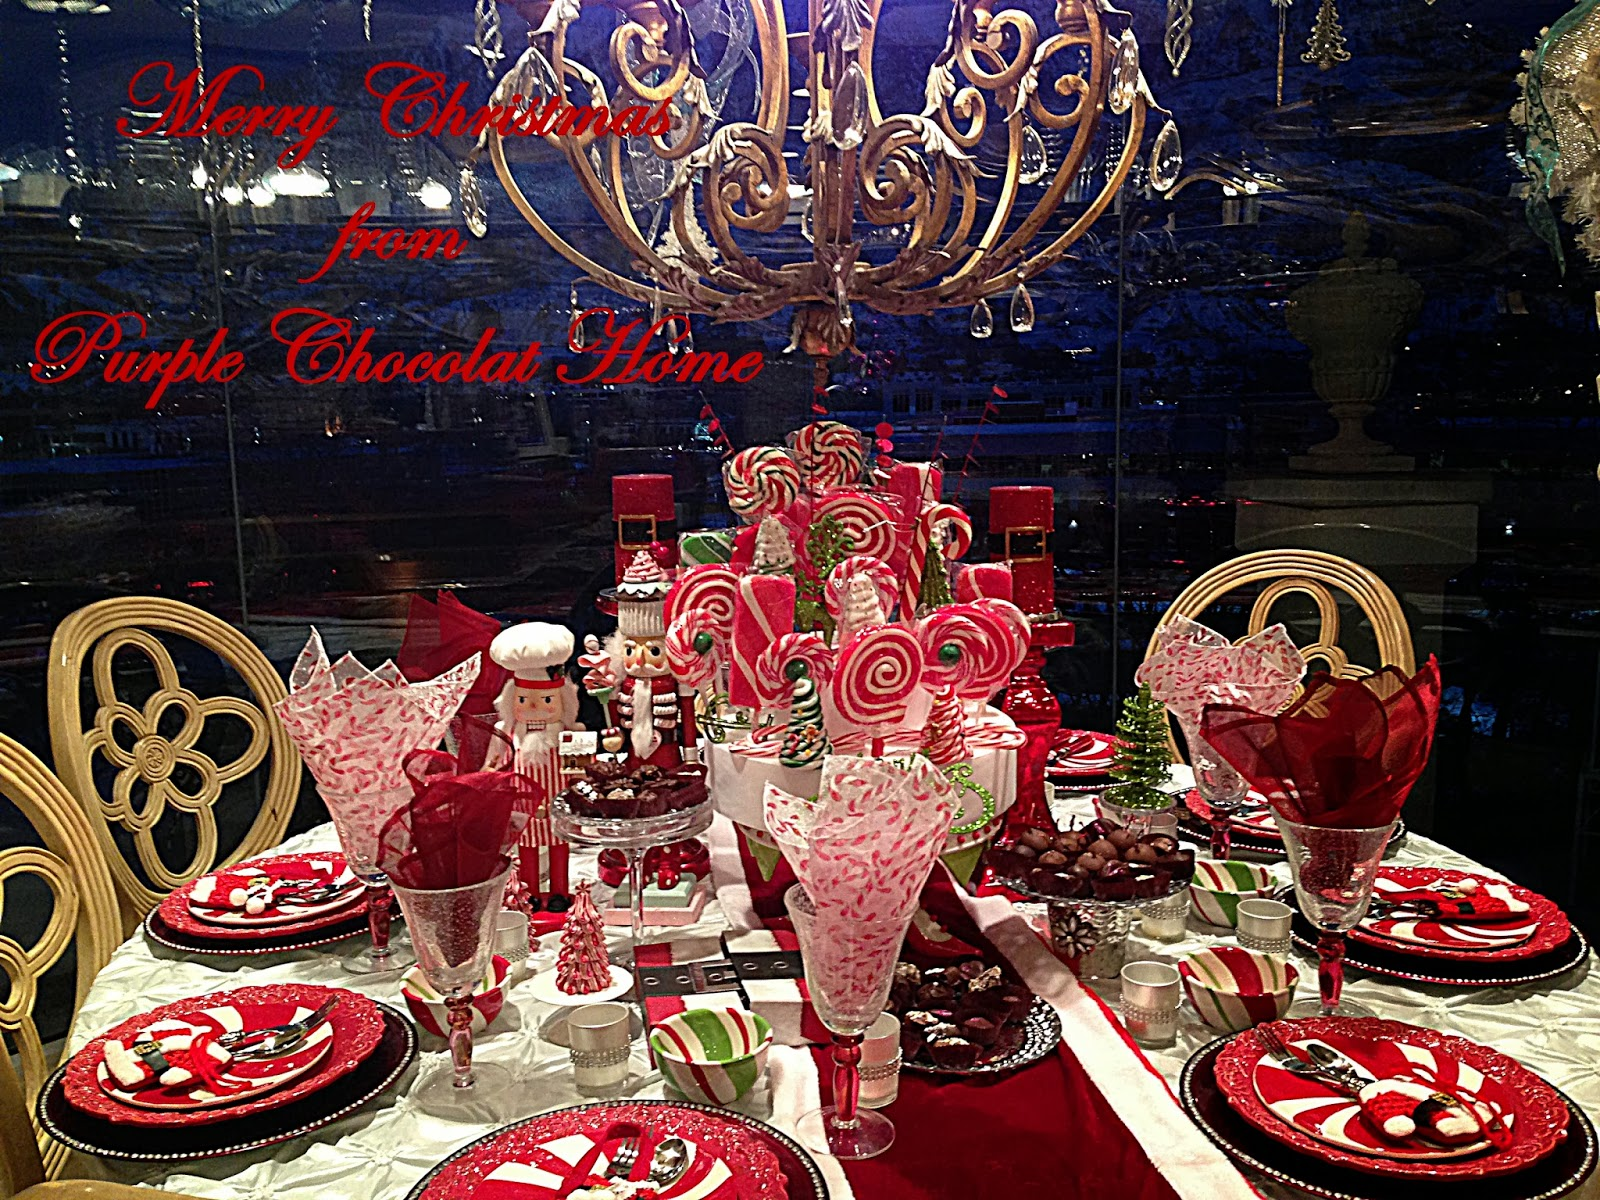 candy land christmas morning table - Candy Cane Christmas Table Decorations